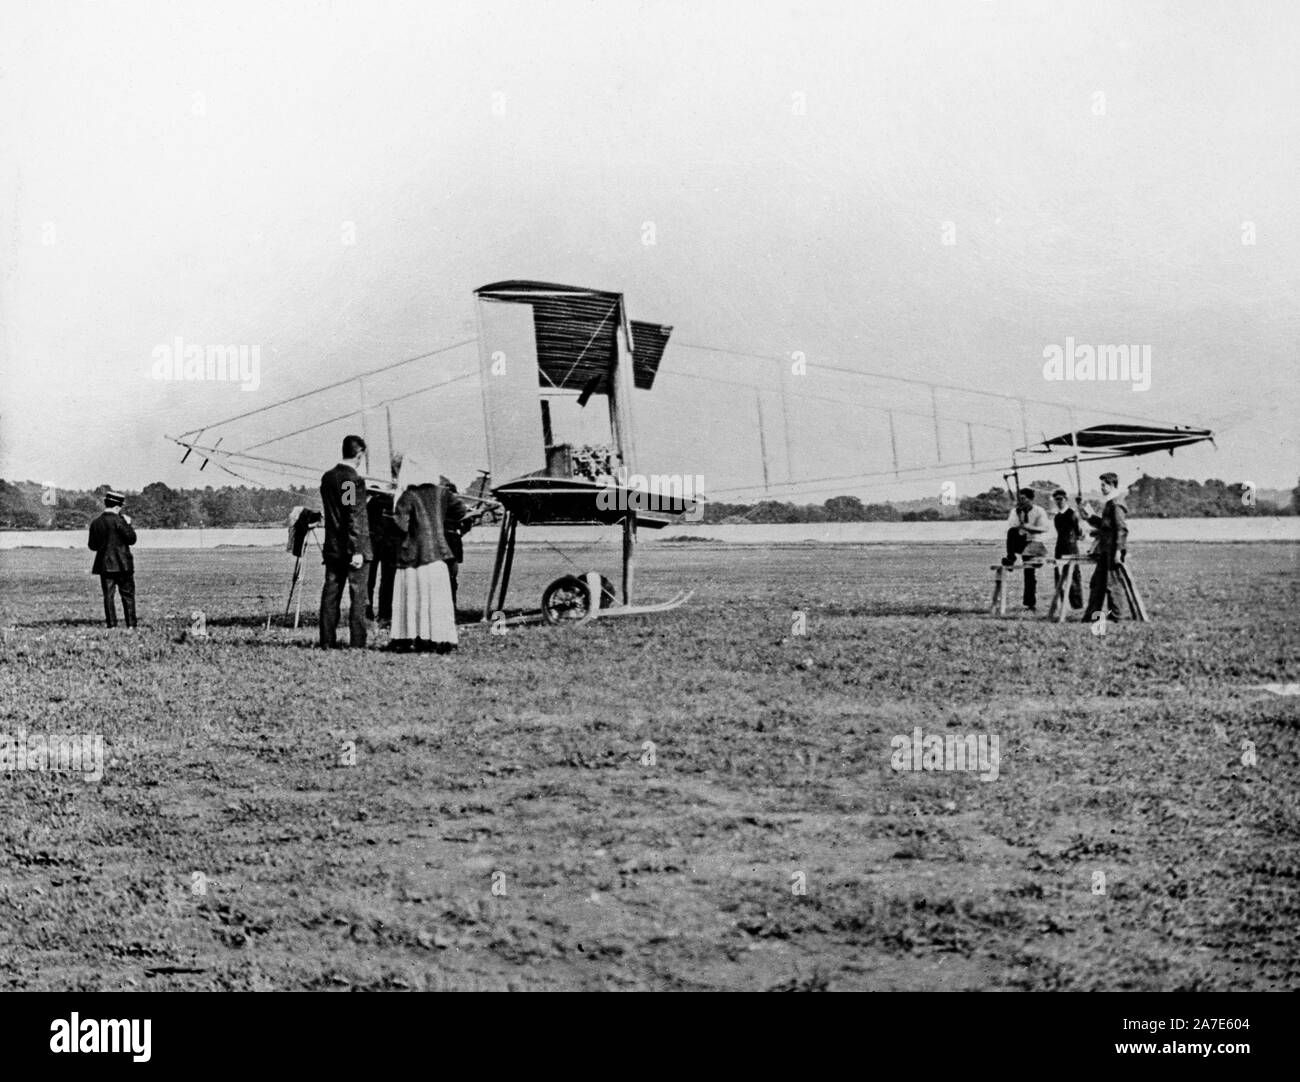 A vintage black and white photograph from 1910, showing a Neale VII Biplane, being prepared for take off, with some people watching. Stock Photo